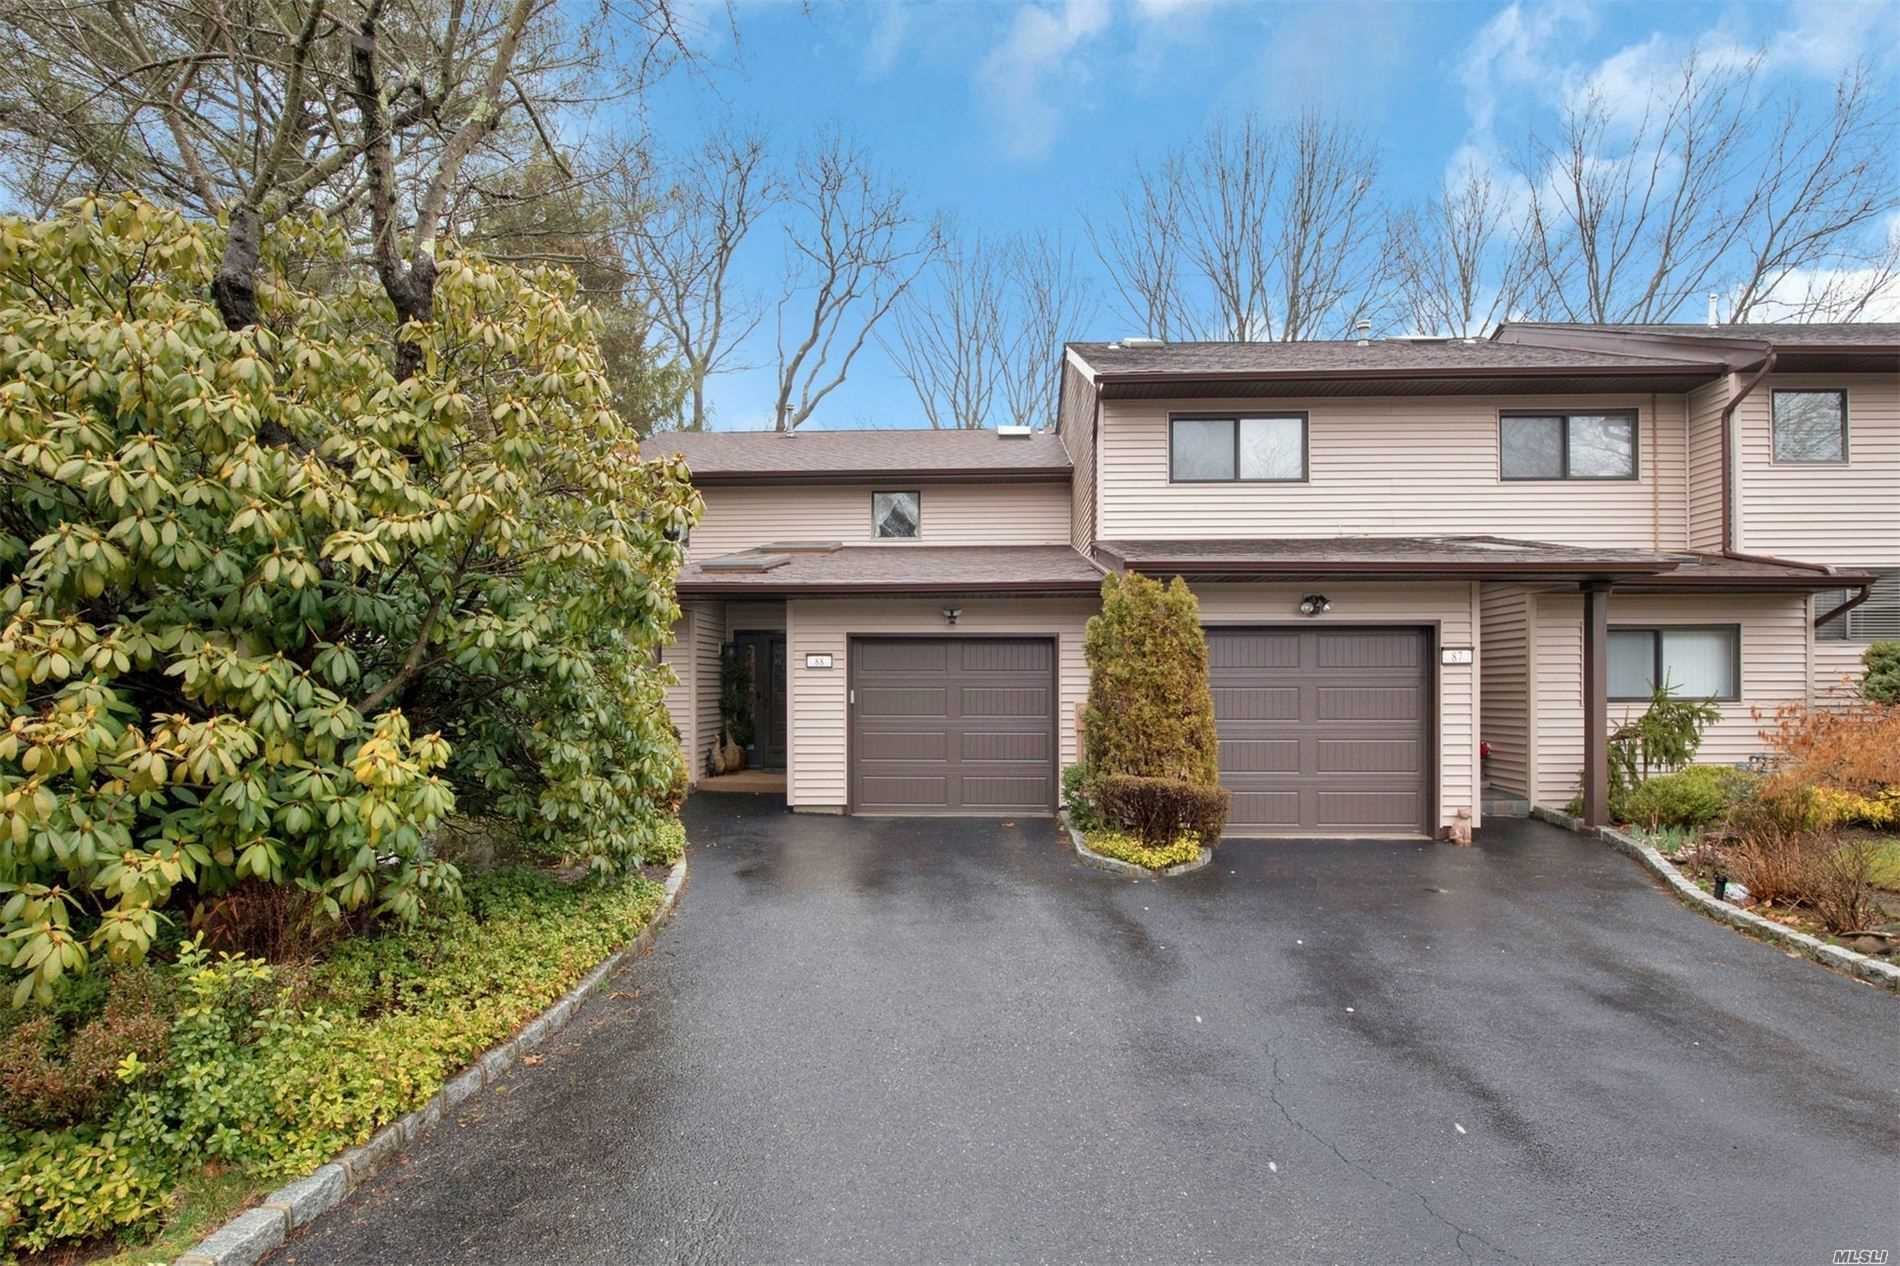 Property for sale at 88 Northgate Circle, Melville NY 11747, Melville,  New York 11747